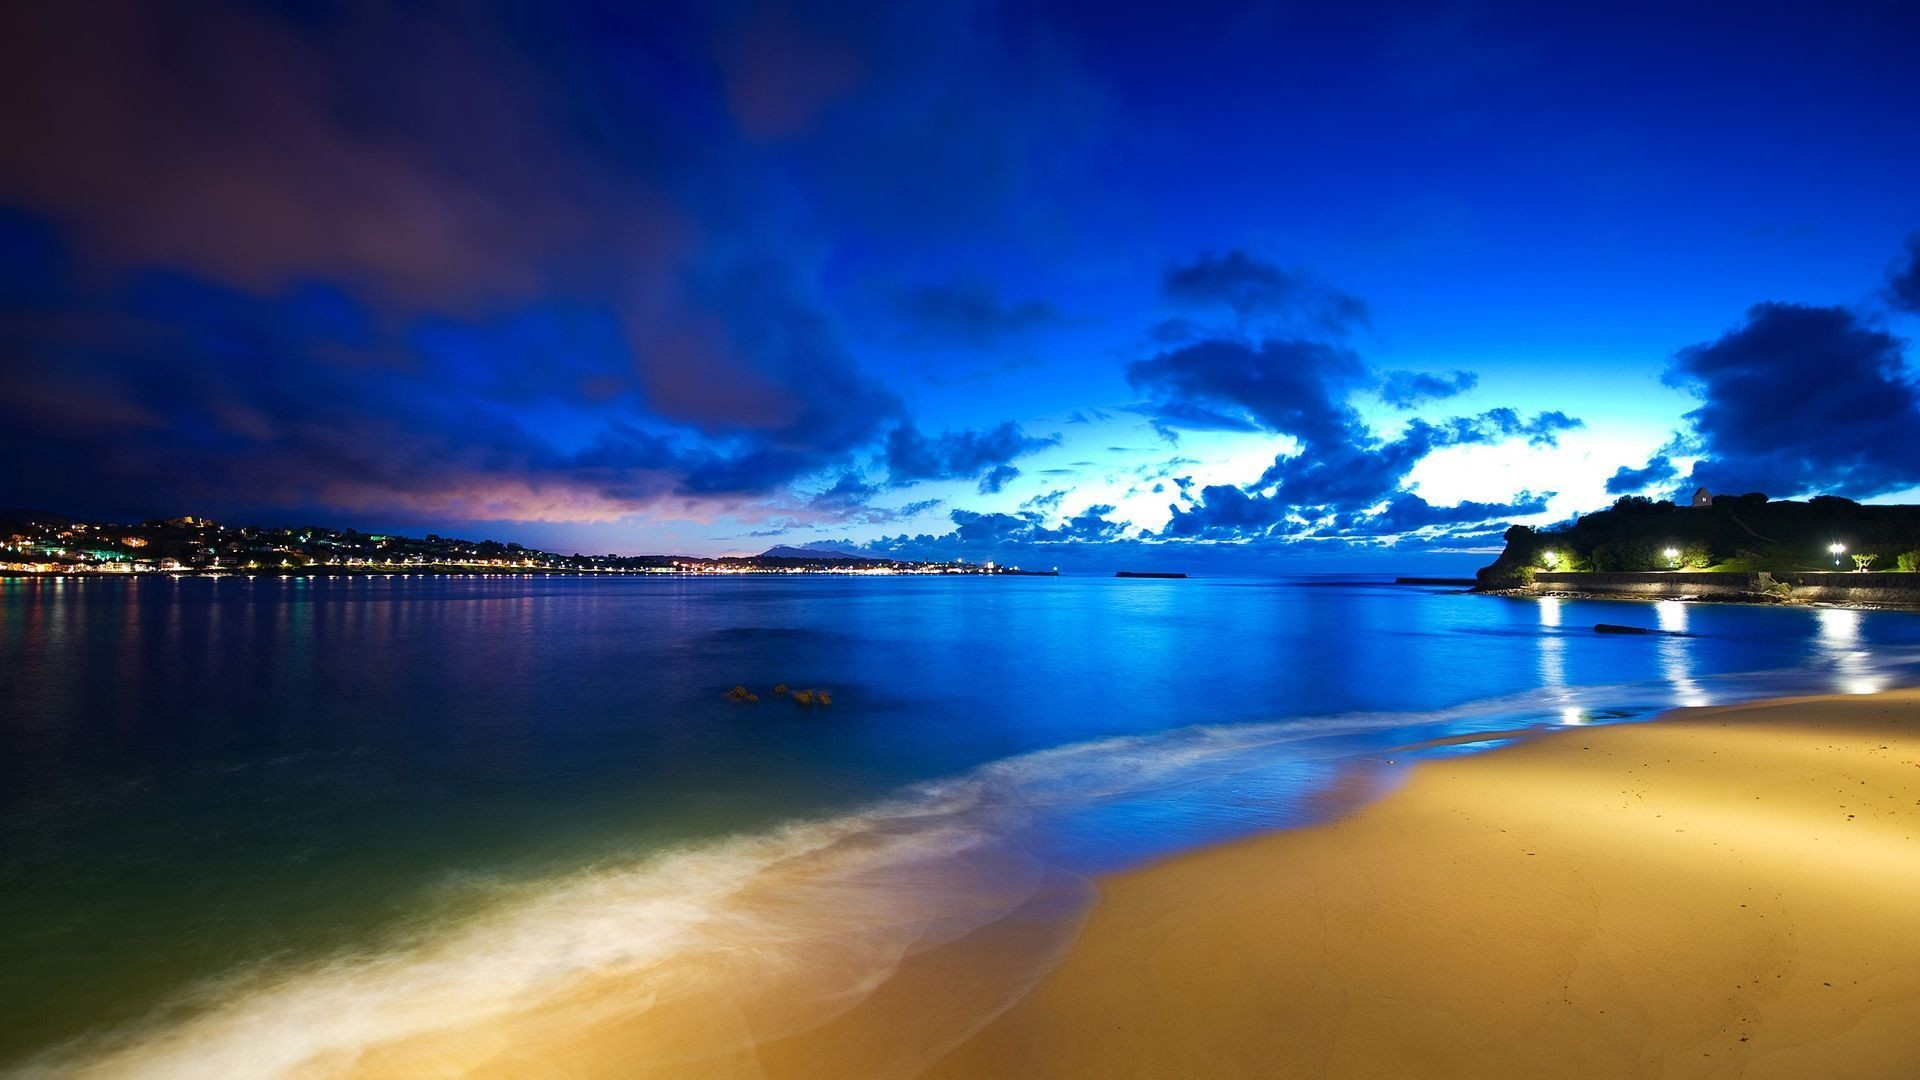 Download hd-beach-wallpapers-1080p – HD 1080p wallpaper background